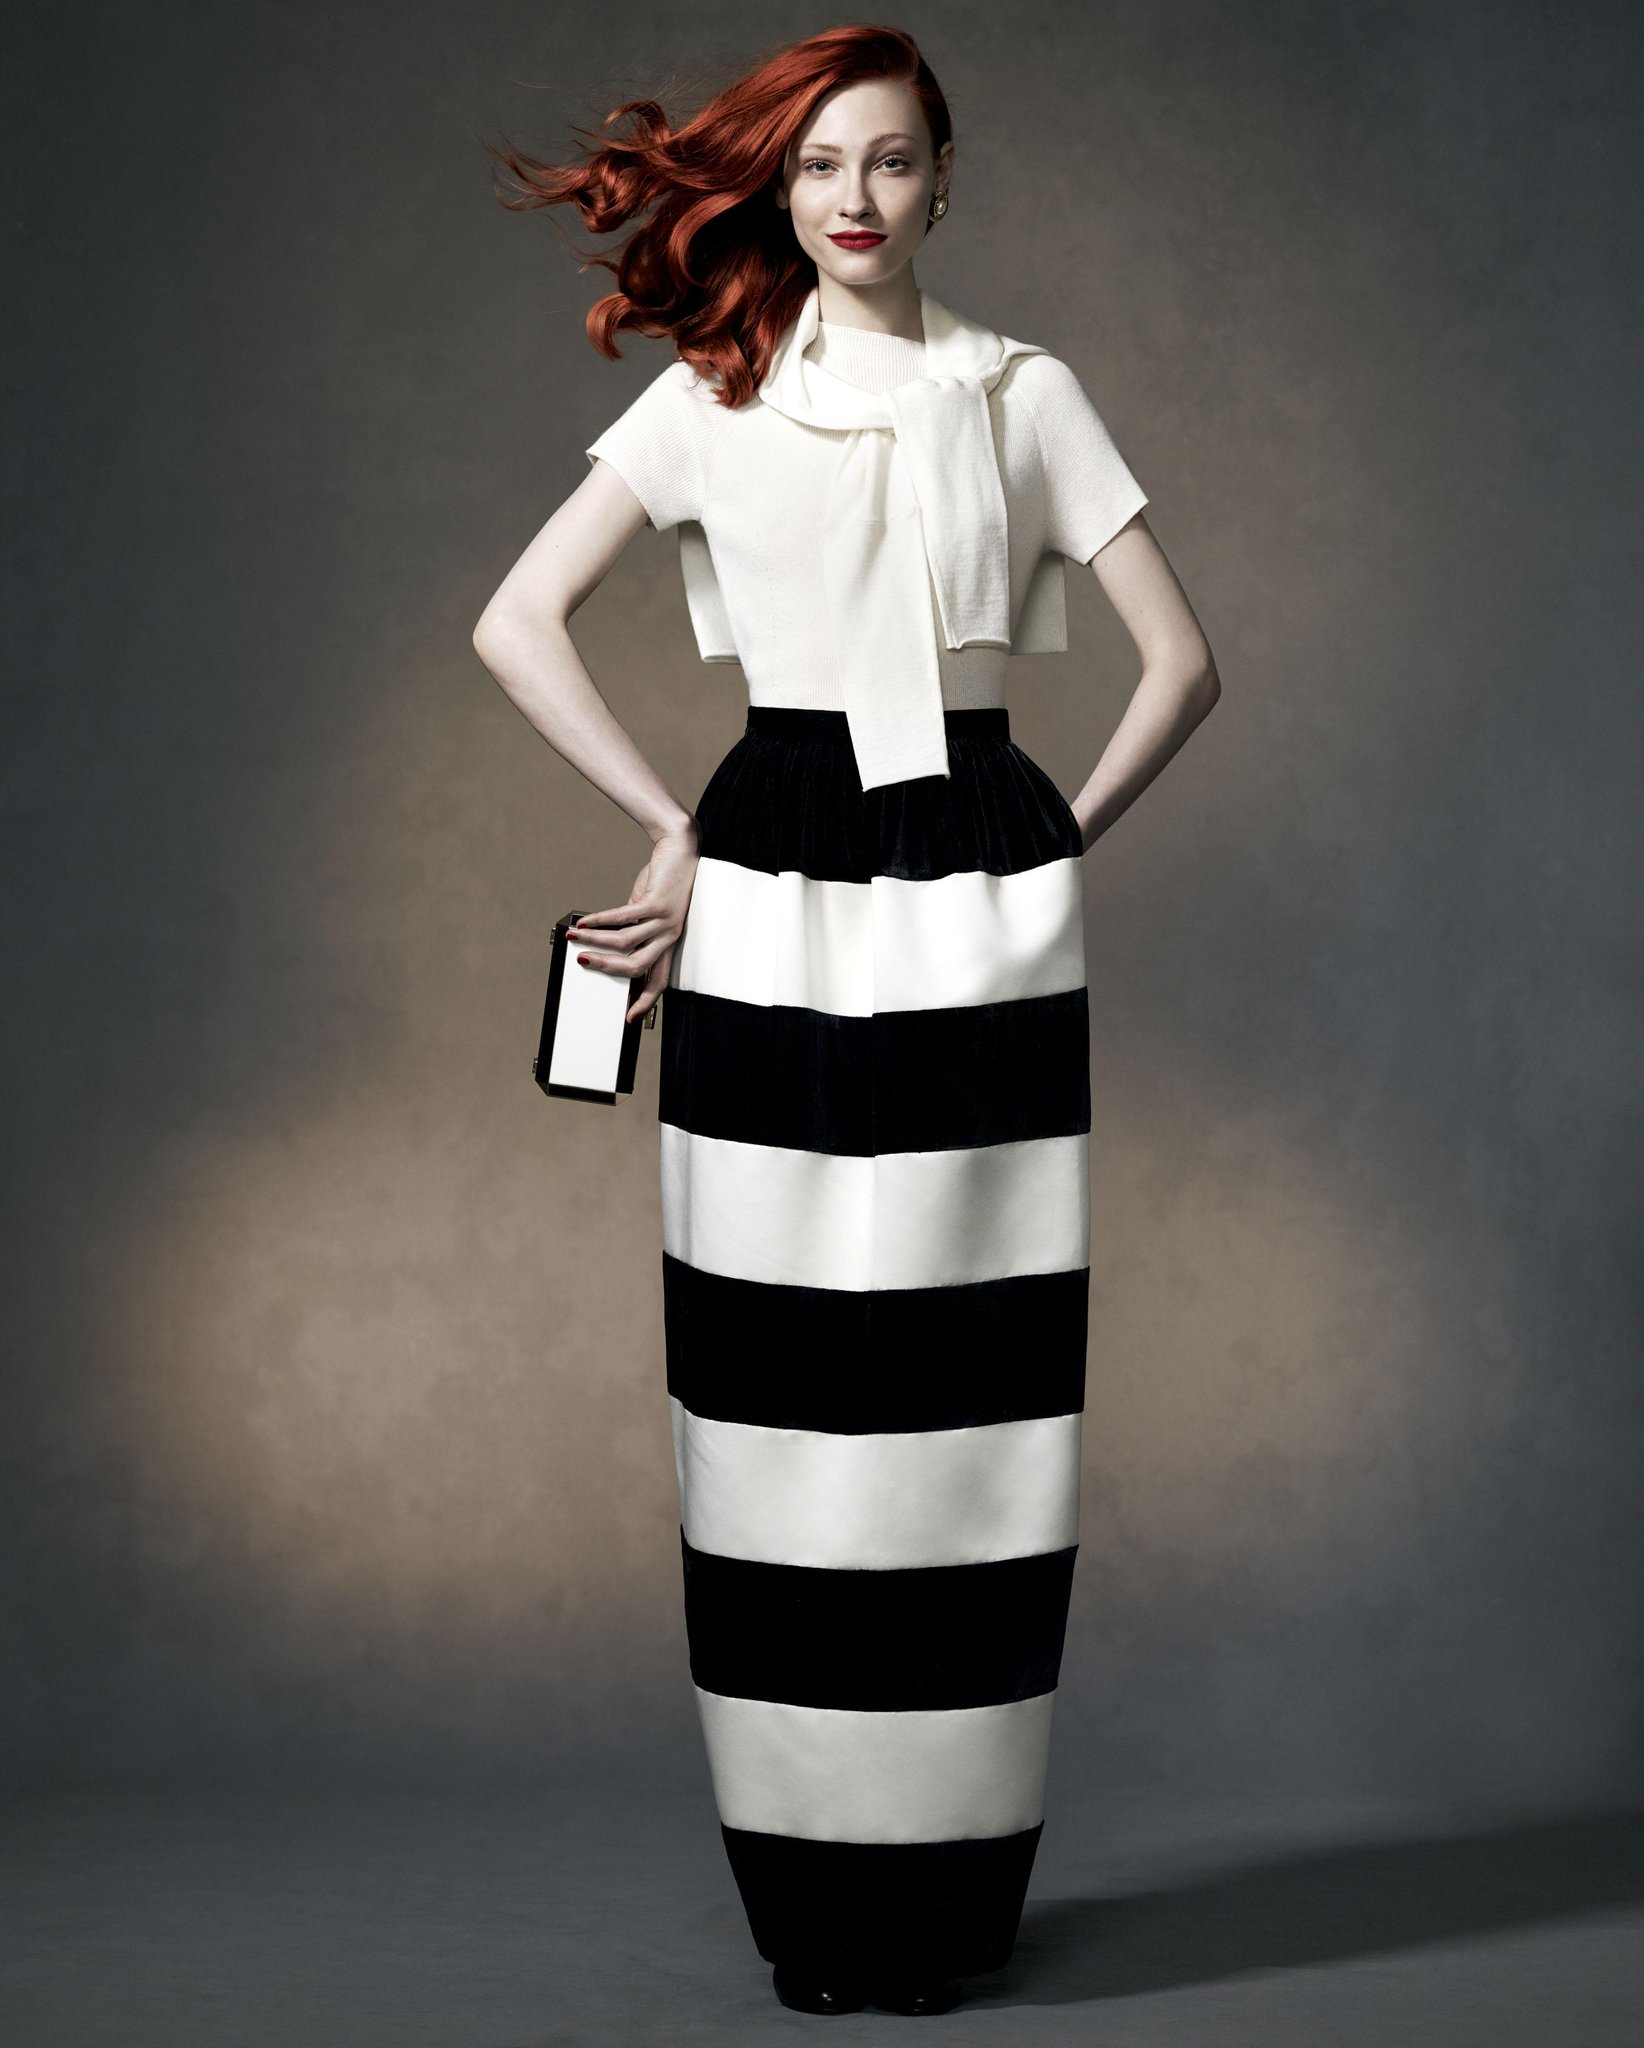 This royal couturier is soon to release a collection with John Lewis and we can't wait http://t.co/bvZ8fBkLNf http://t.co/pnY7jddiBt